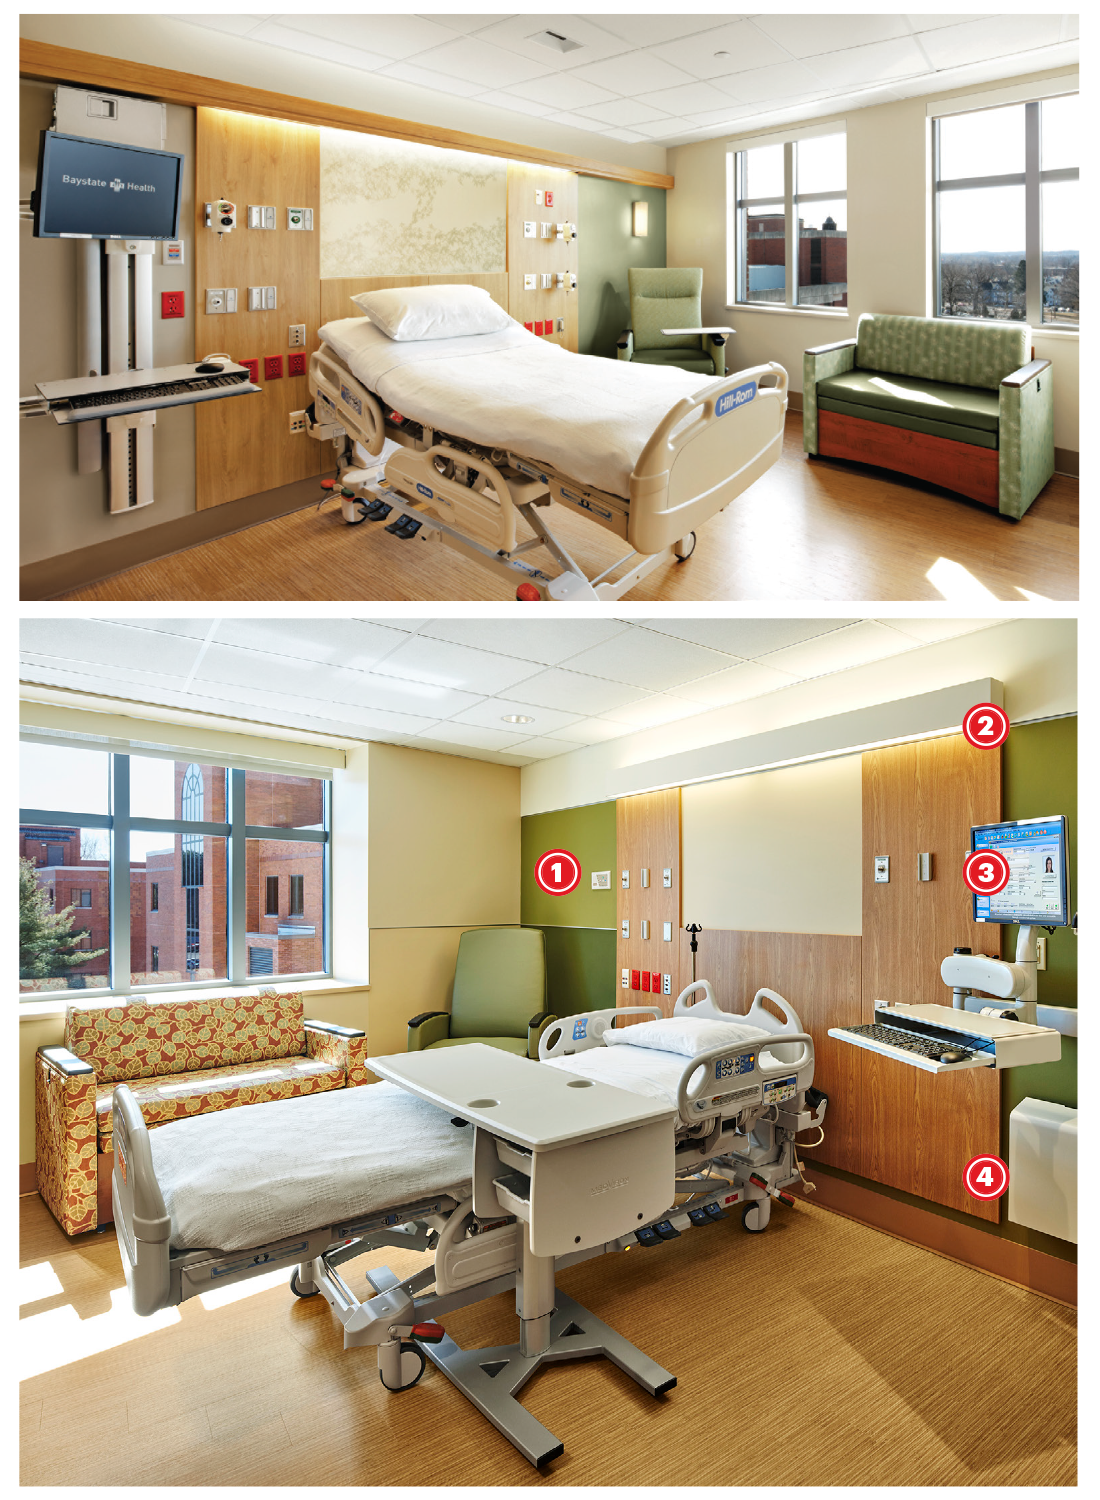 Changes to the patient bedrooms based off evidence